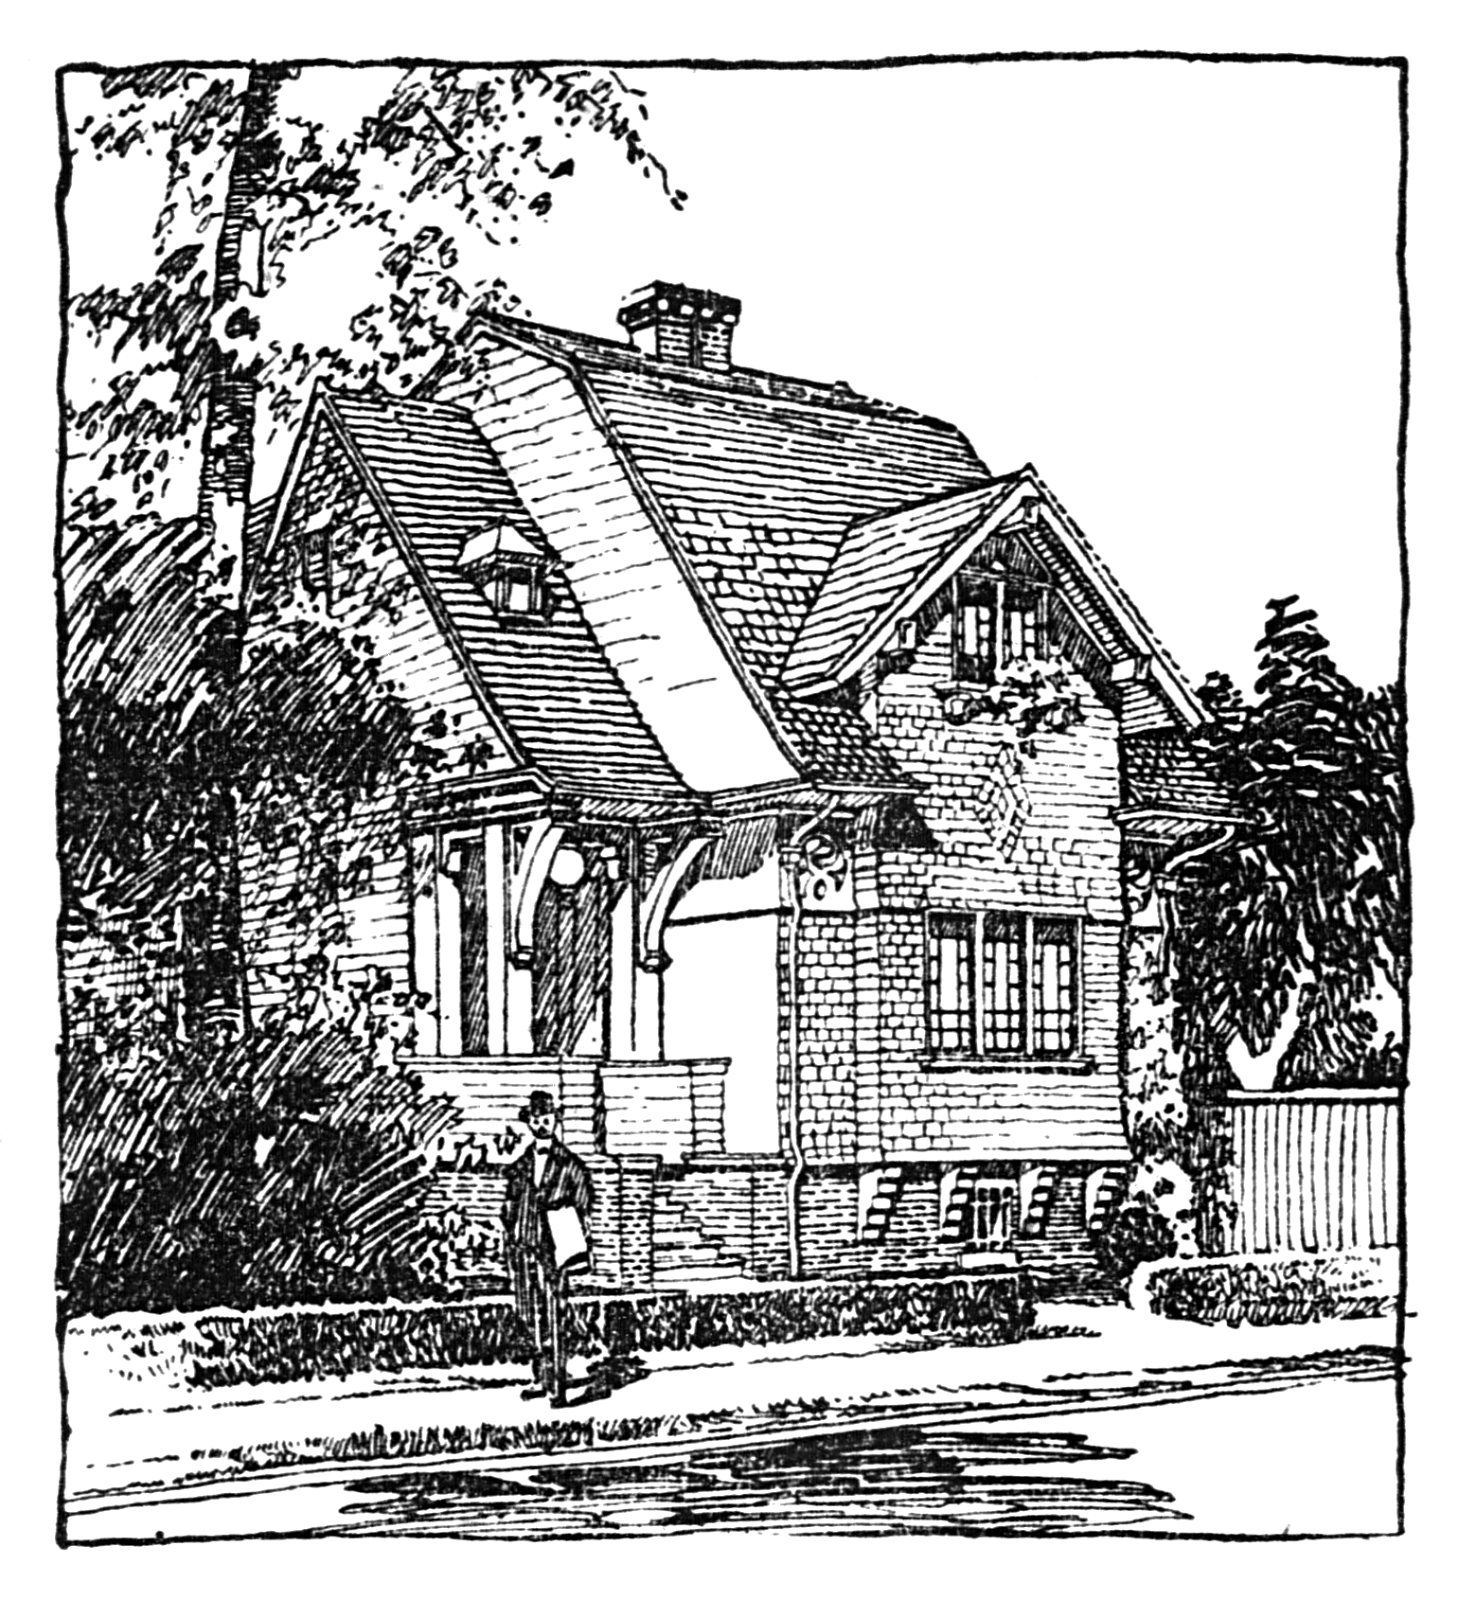 I Love Cottages So As Soon Saw This Illustration Immediately Wanted To Make It Available Here On Blog Comes From A Newspaper Published In